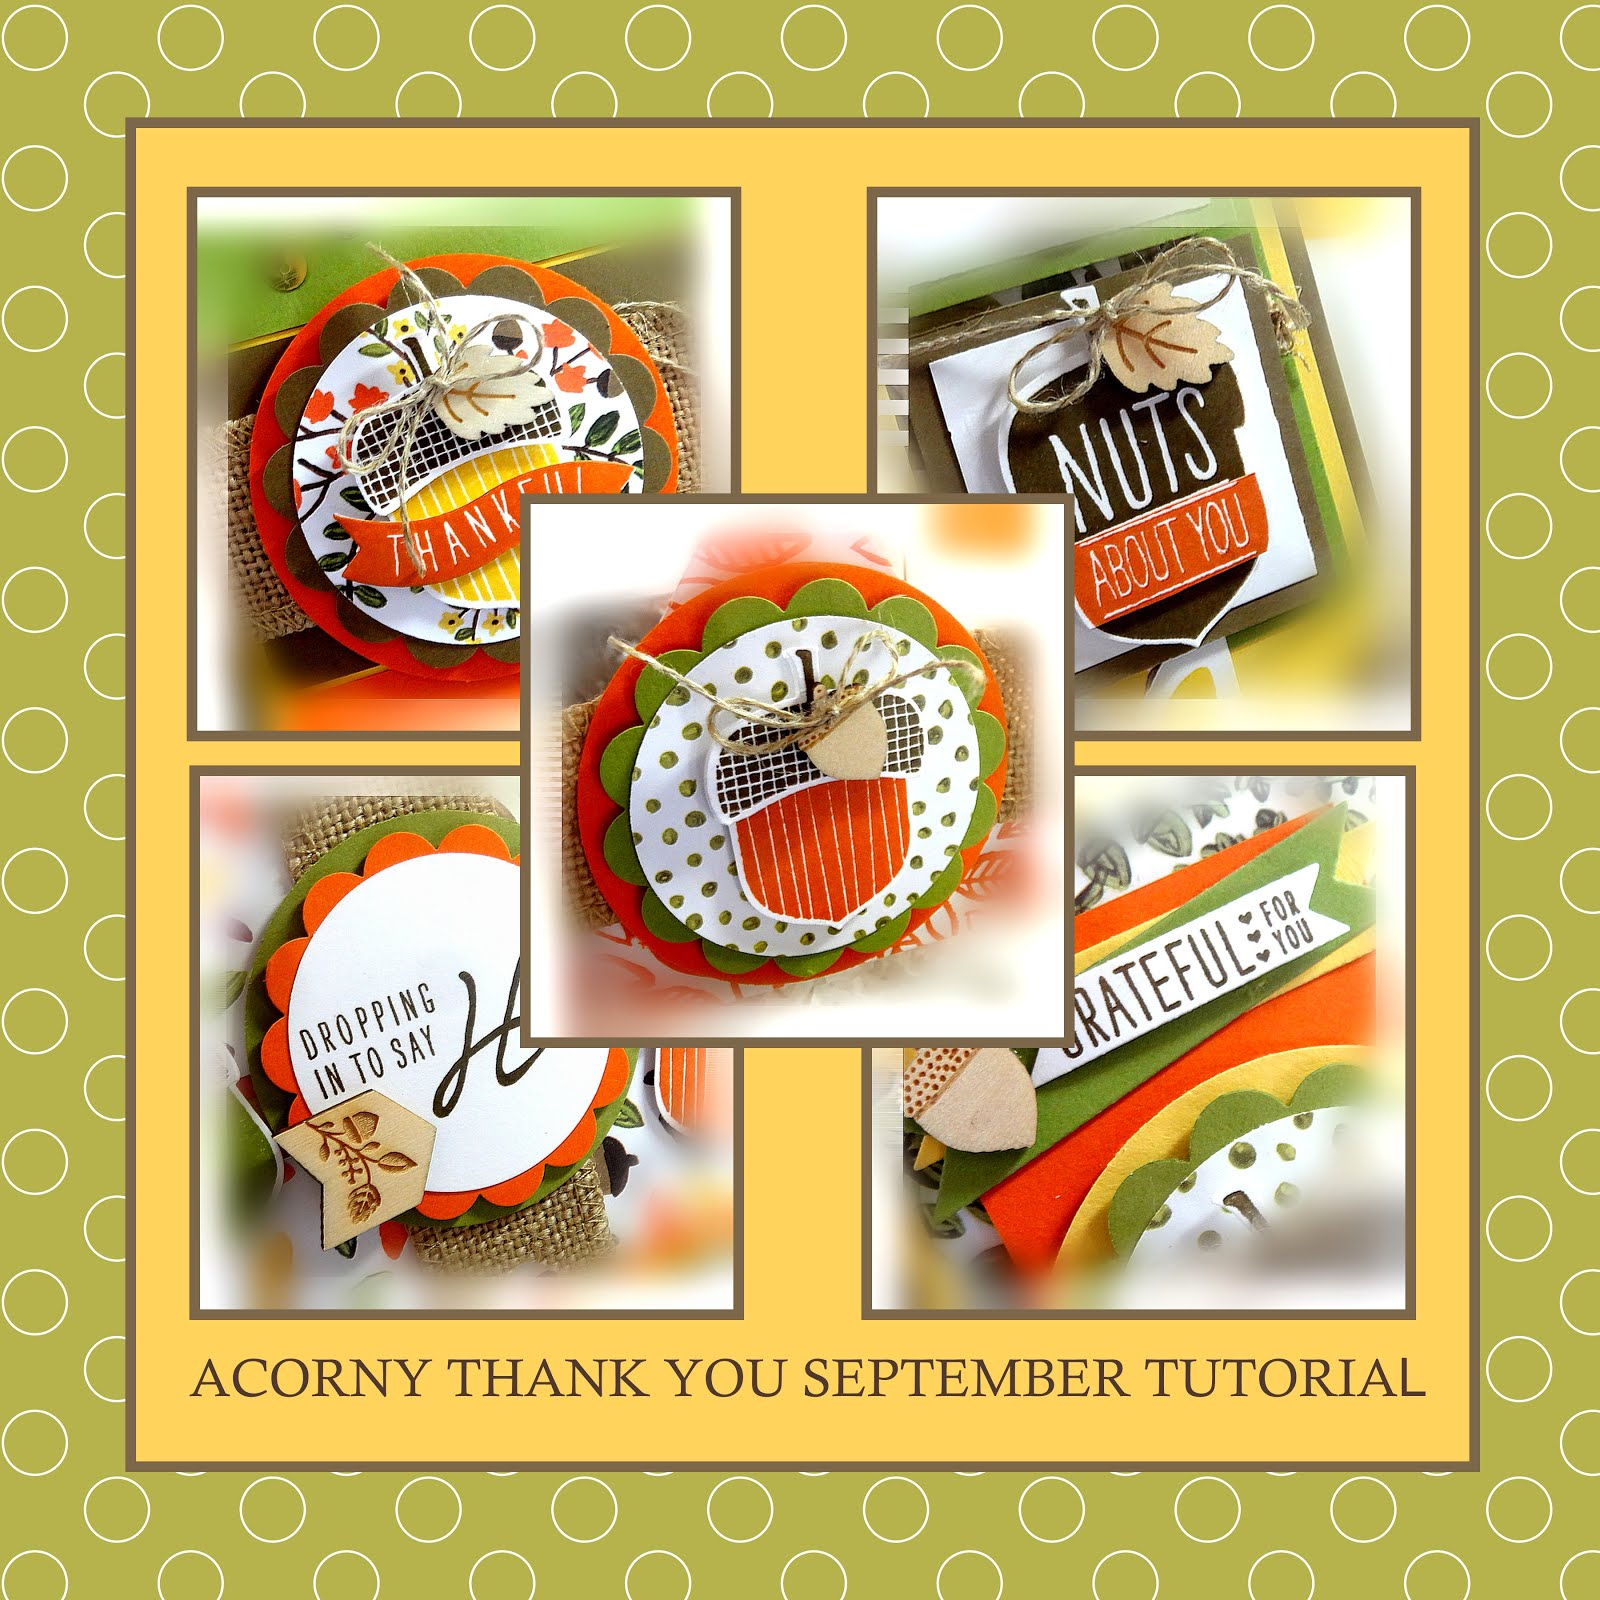 September 2015 Acorny Thank You Tutorial